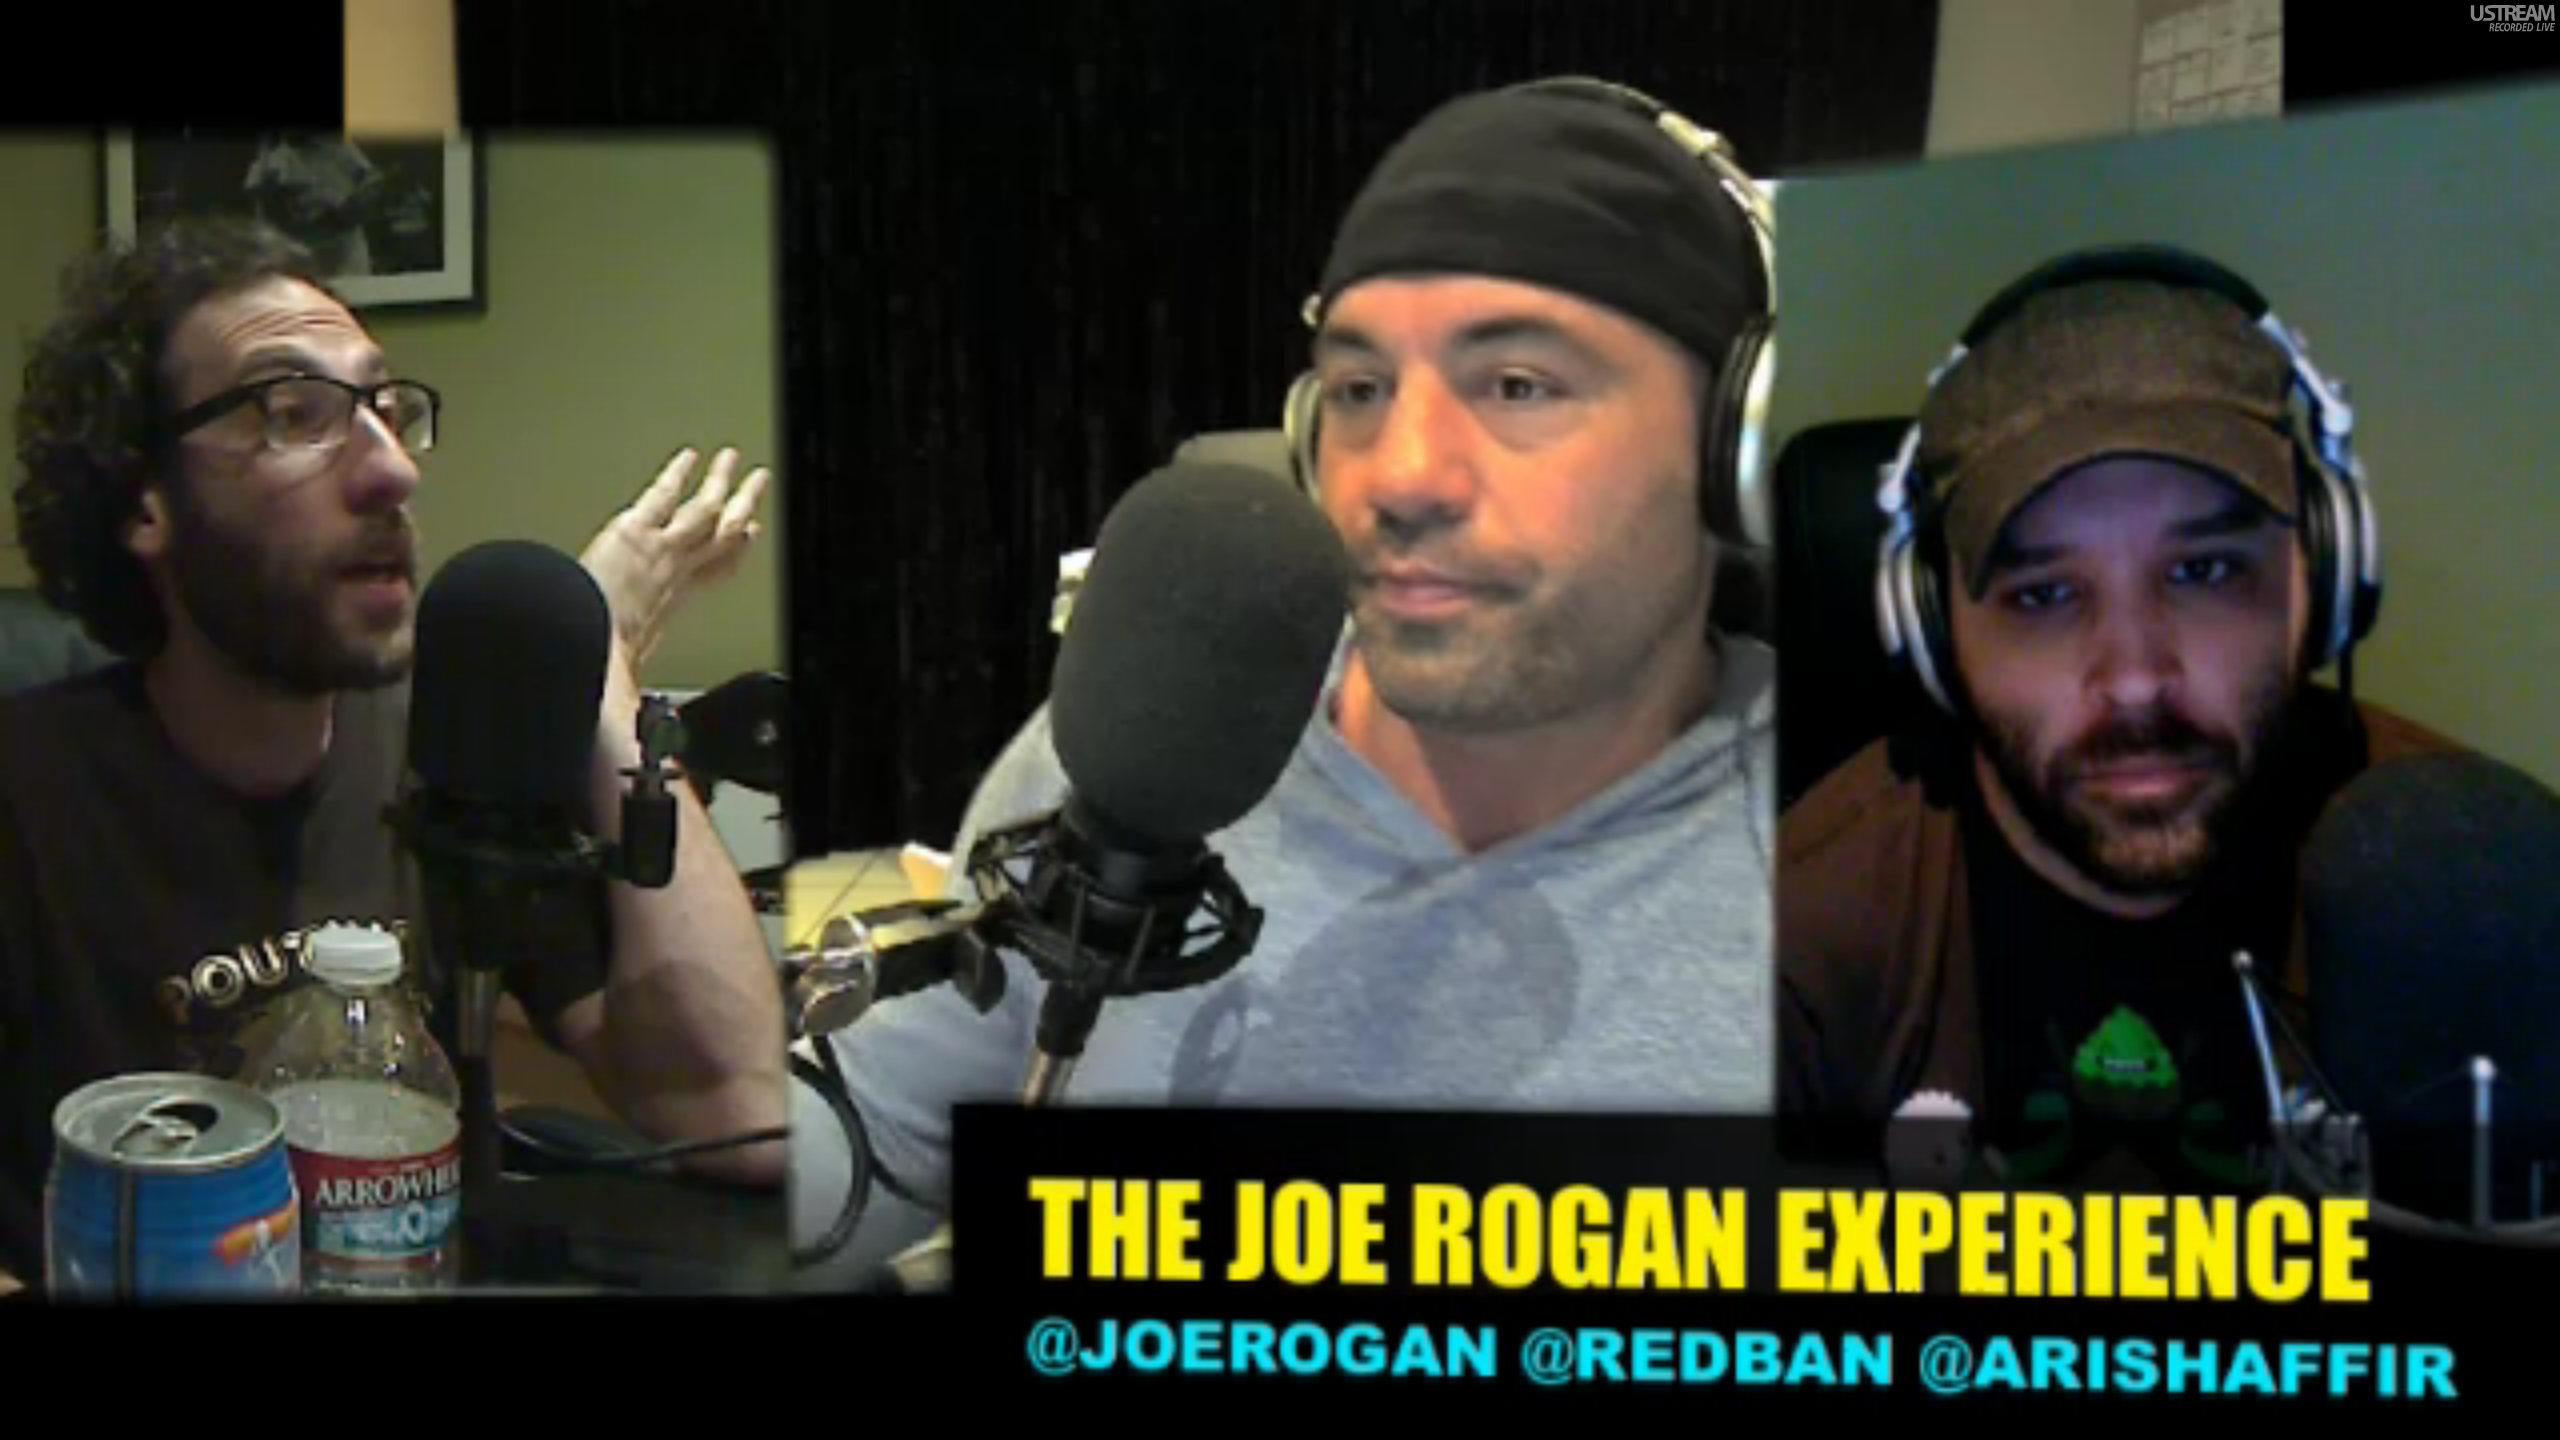 The Joe Rogan Experience PODCAST #175 - Ari Shaffir, Brian Redban